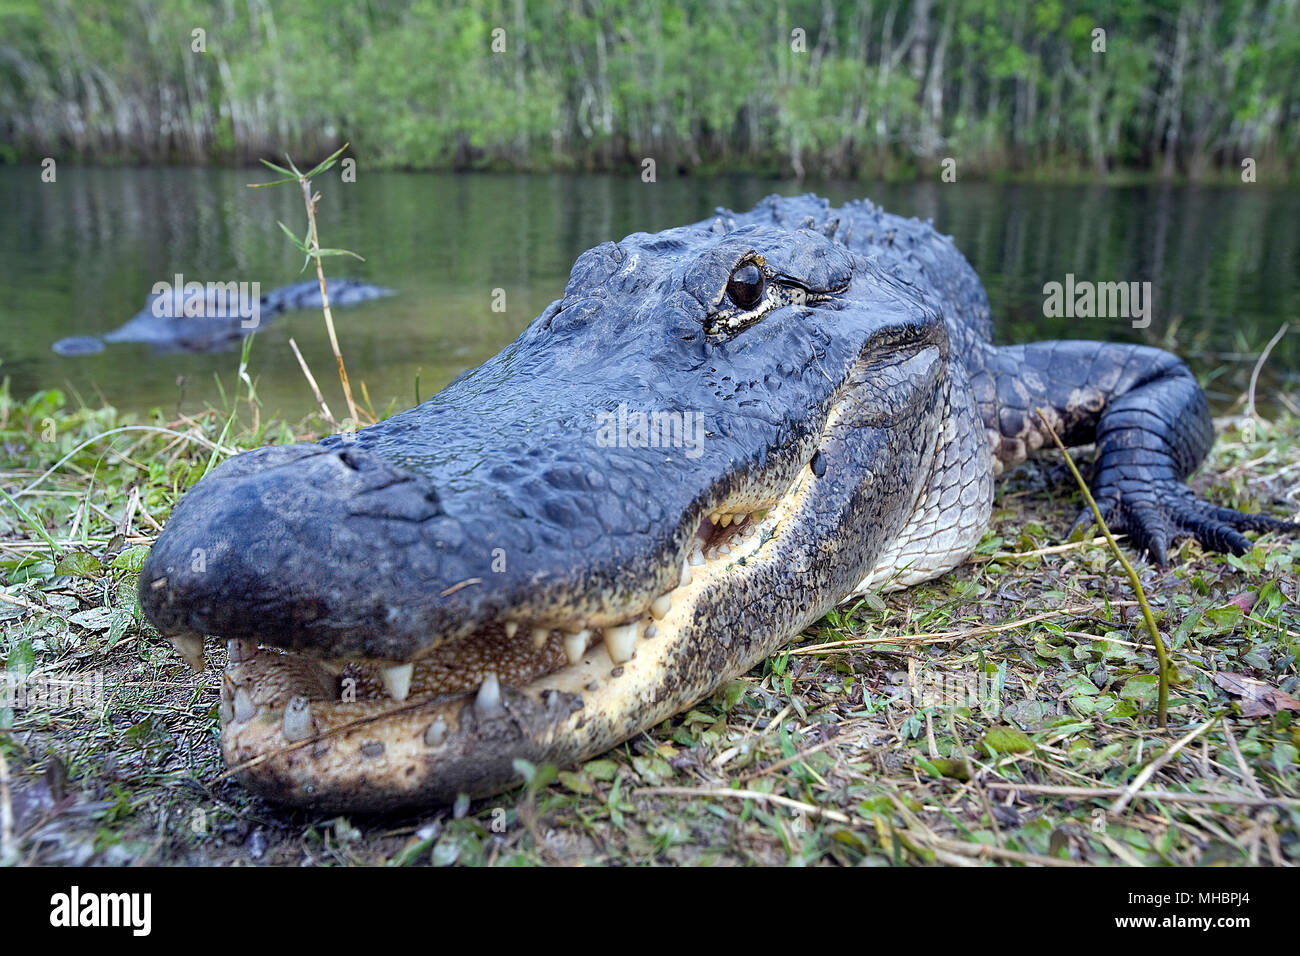 American alligator (Alligator mississippiensis), animal portrait on the shore, Everglades, Florida, USA - Stock Image